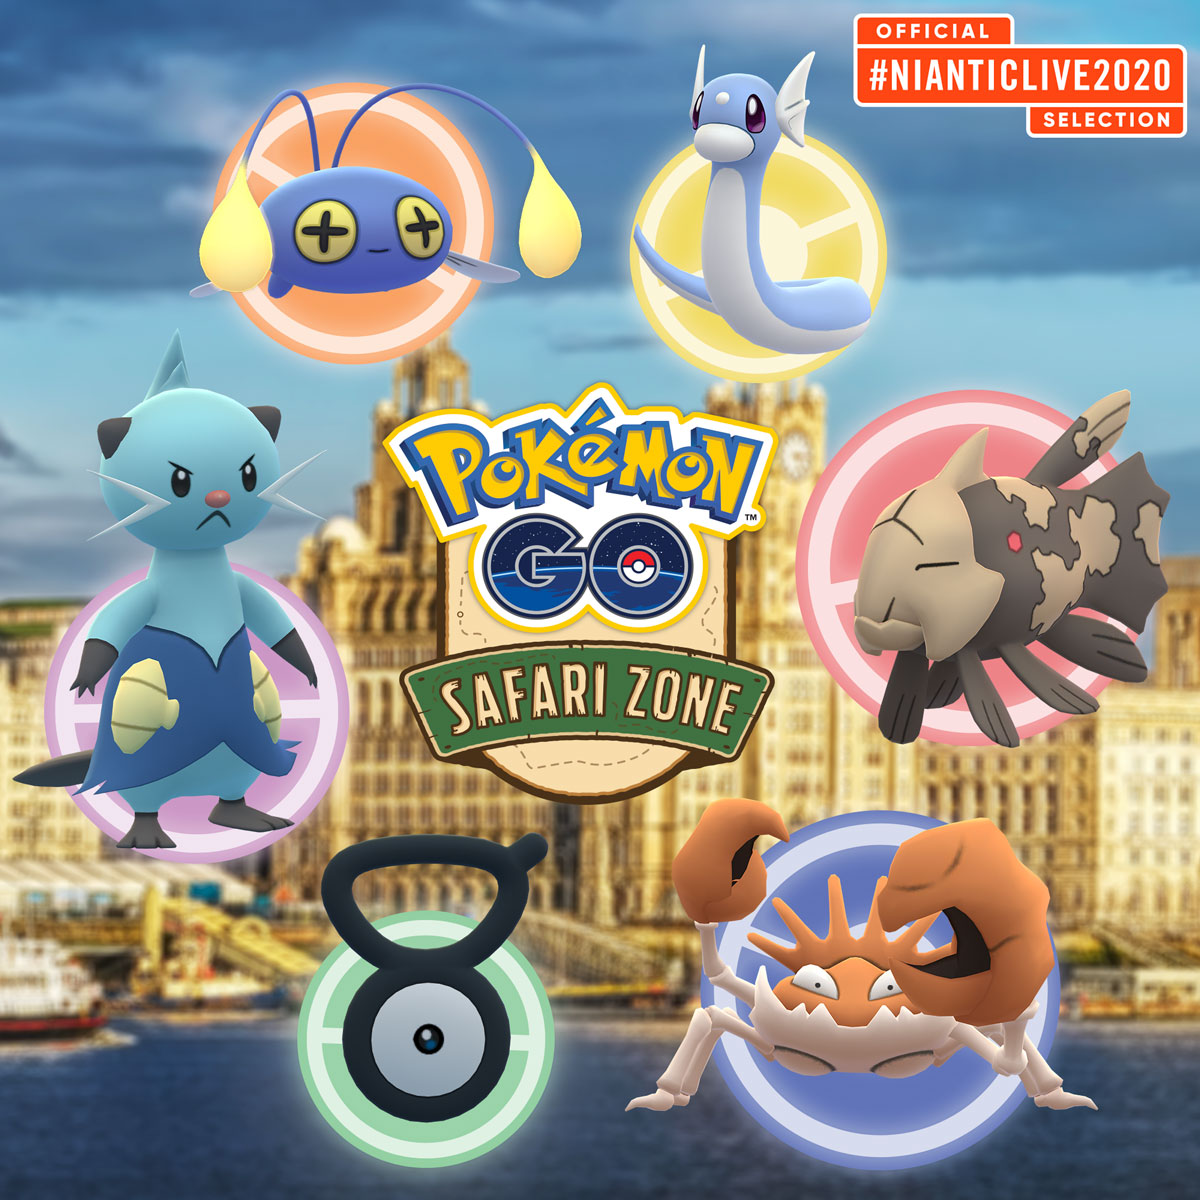 Pokémon GO for Liverpool!